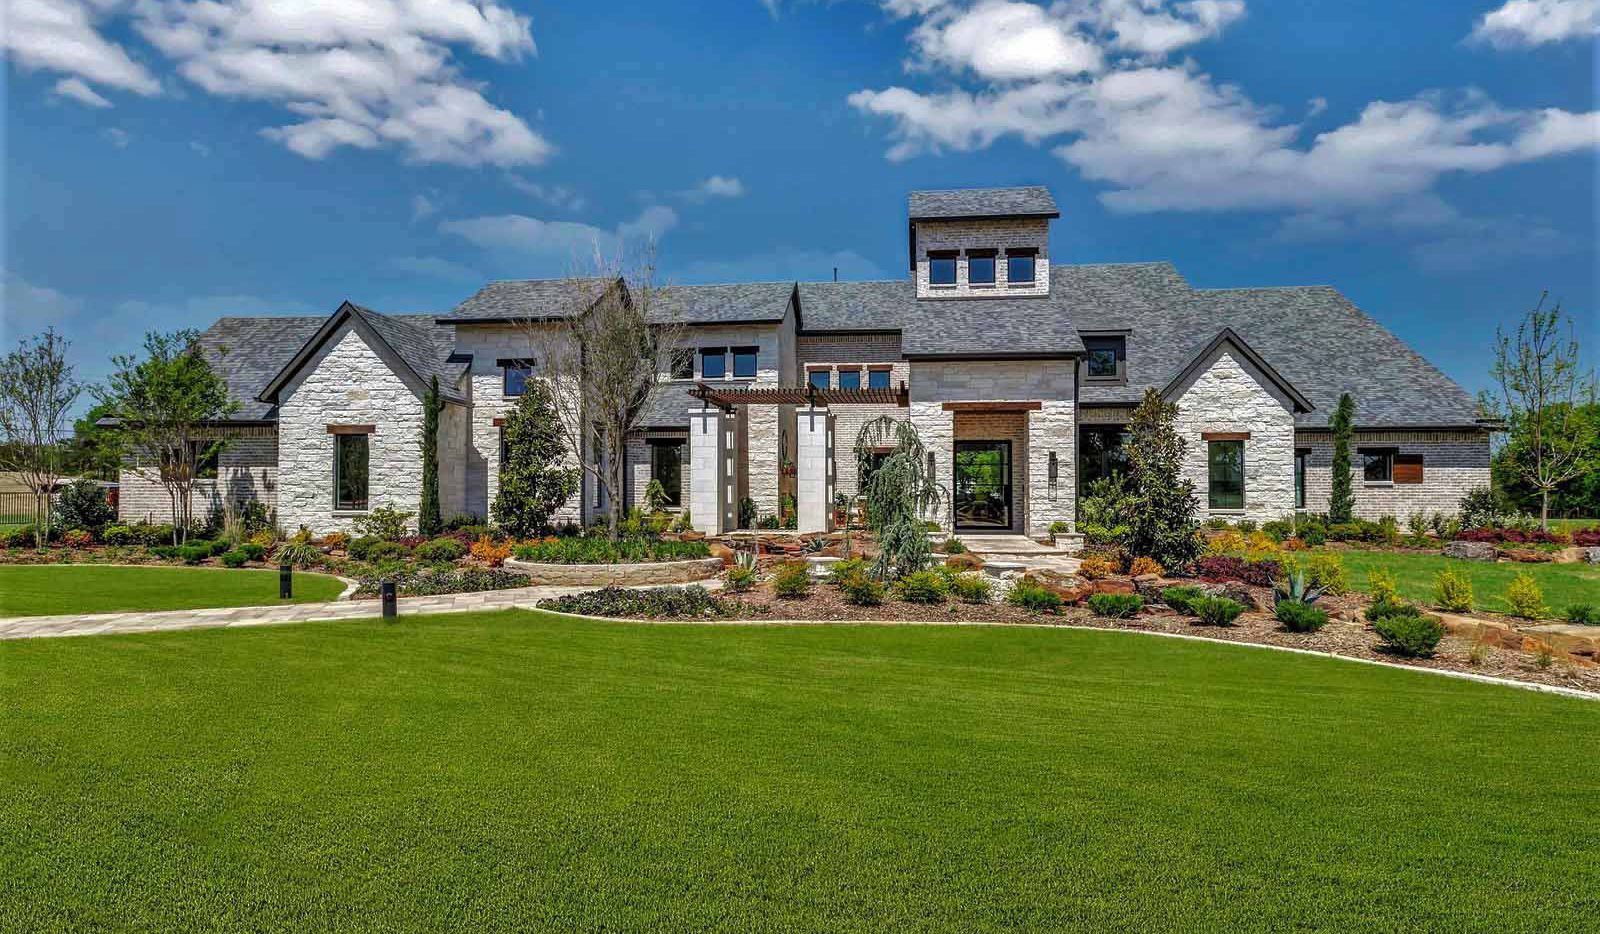 J. Anthony Custom Homes built this amenity-filled home, including a main house and a guest house, on 2 acres in Lucas, Texas.